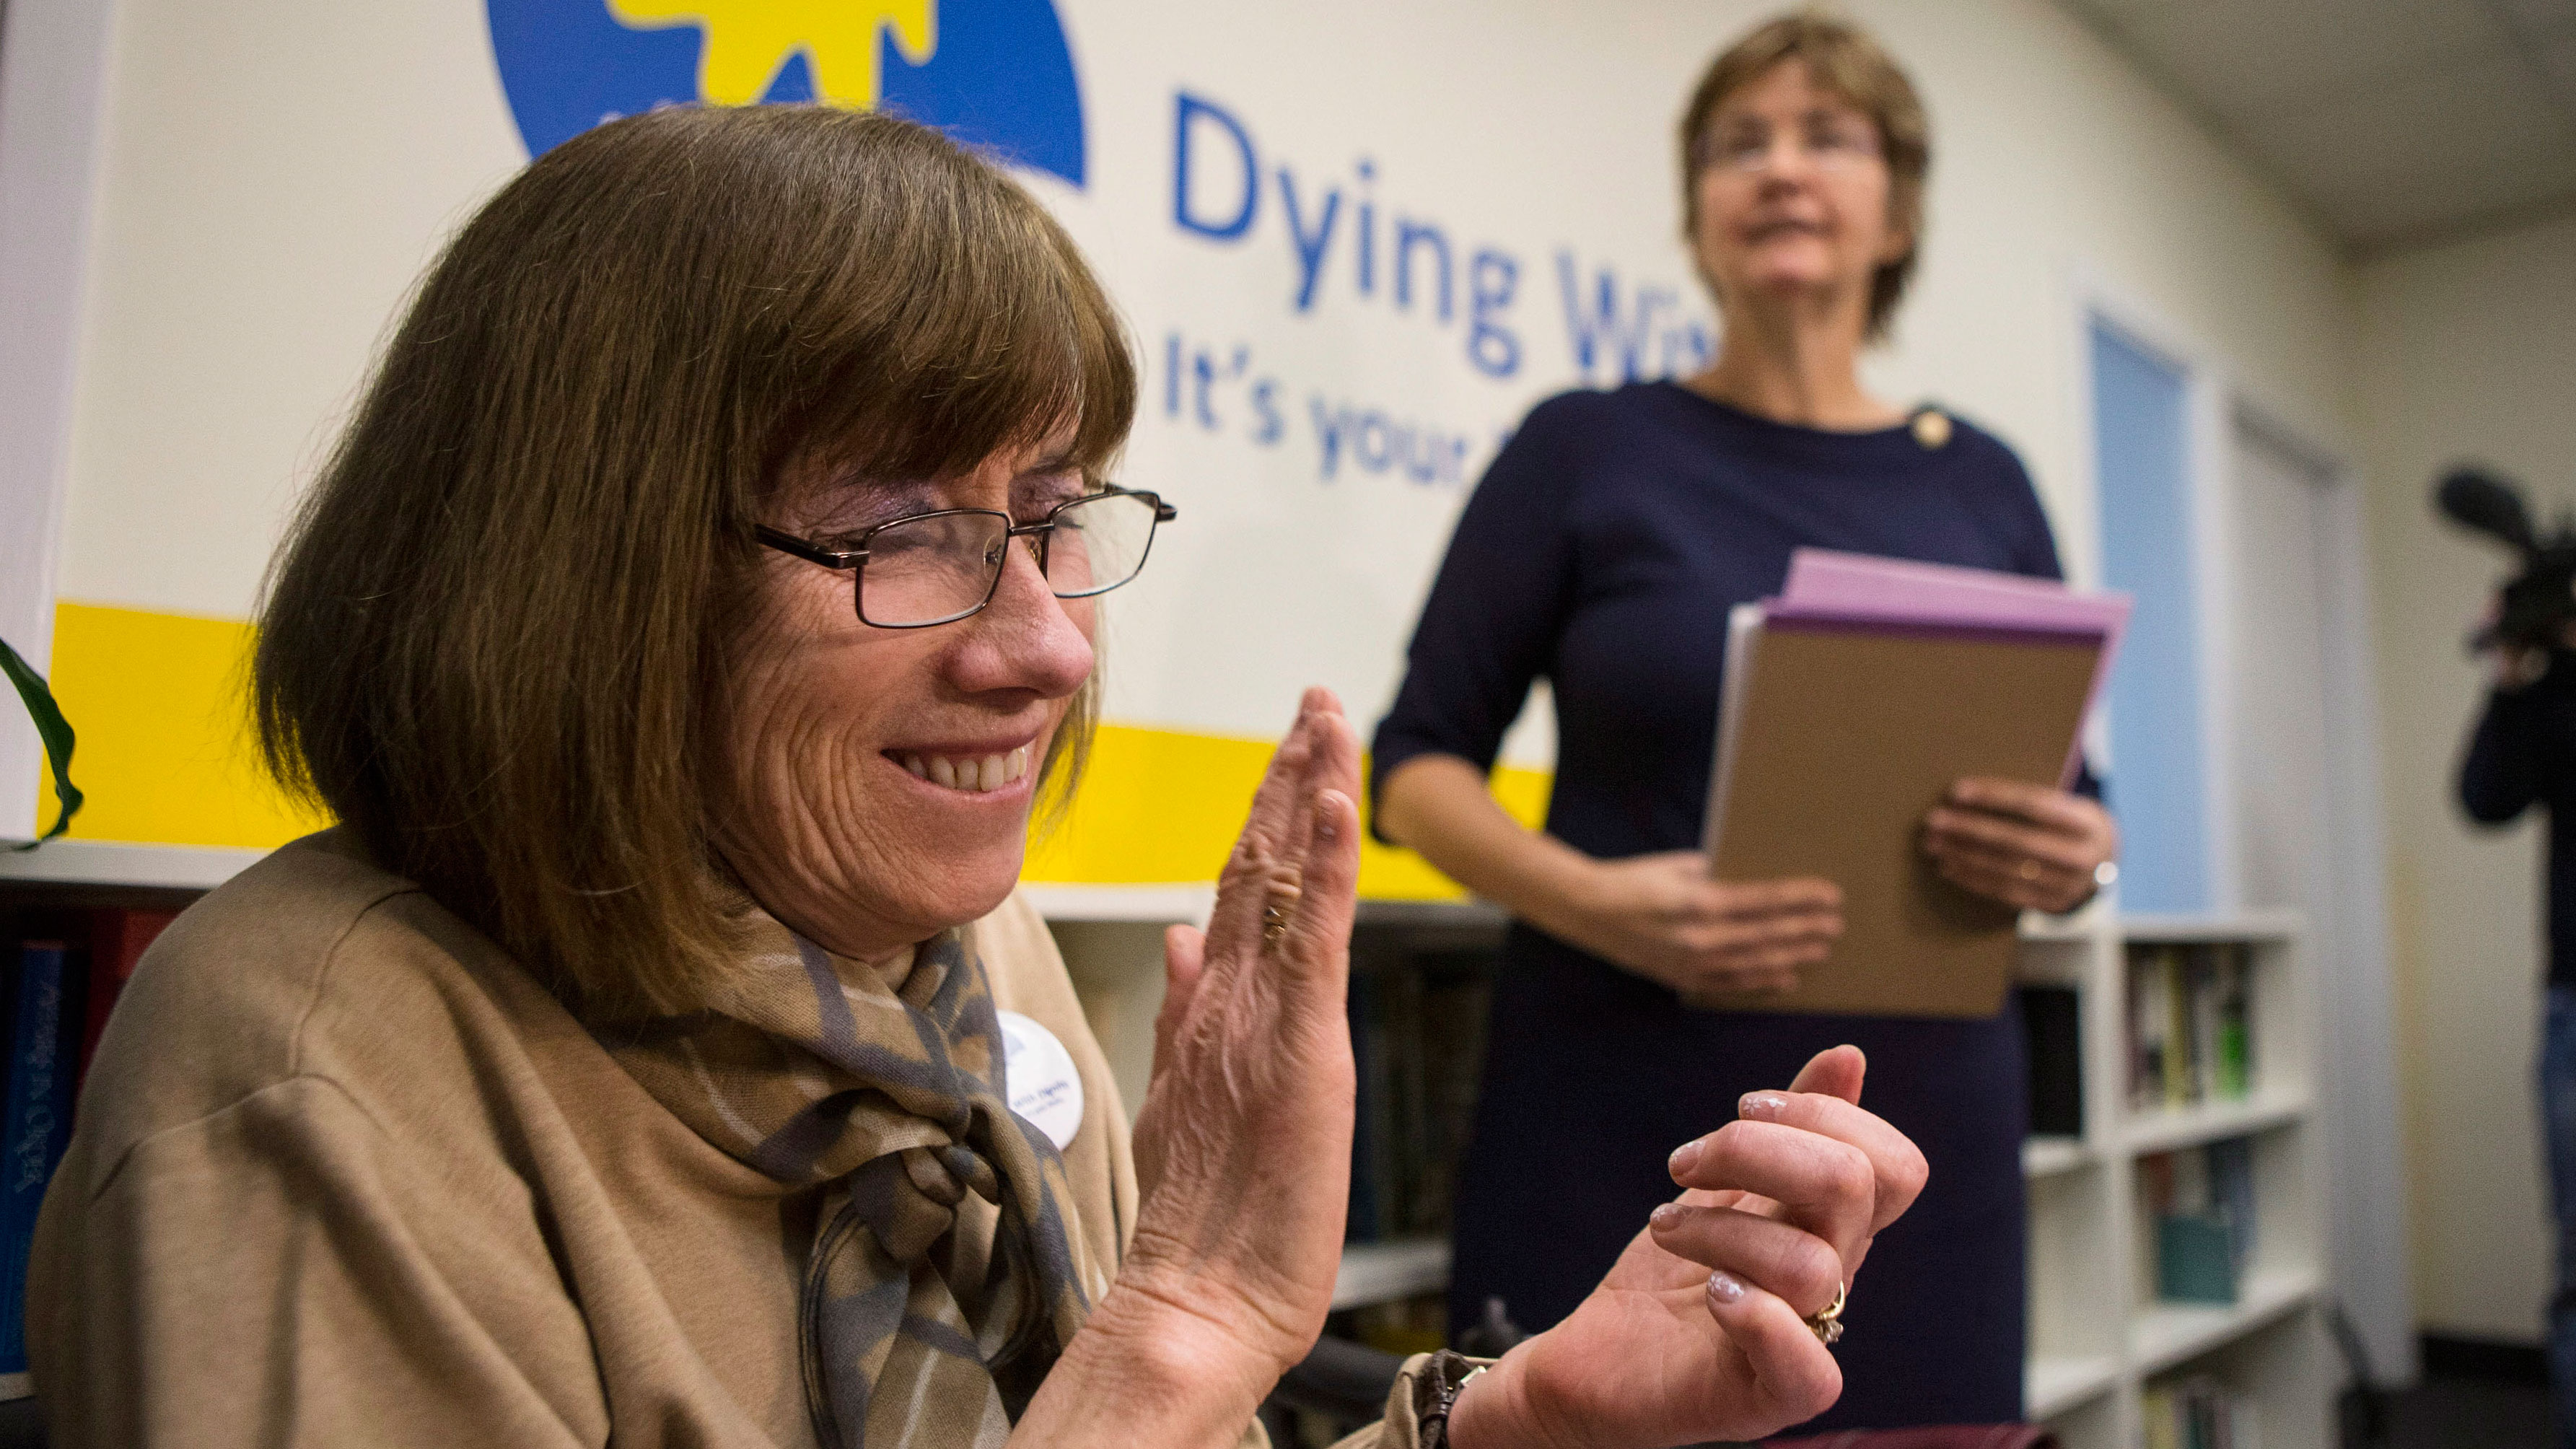 argument in favor of legalizing assisted suicide in united states